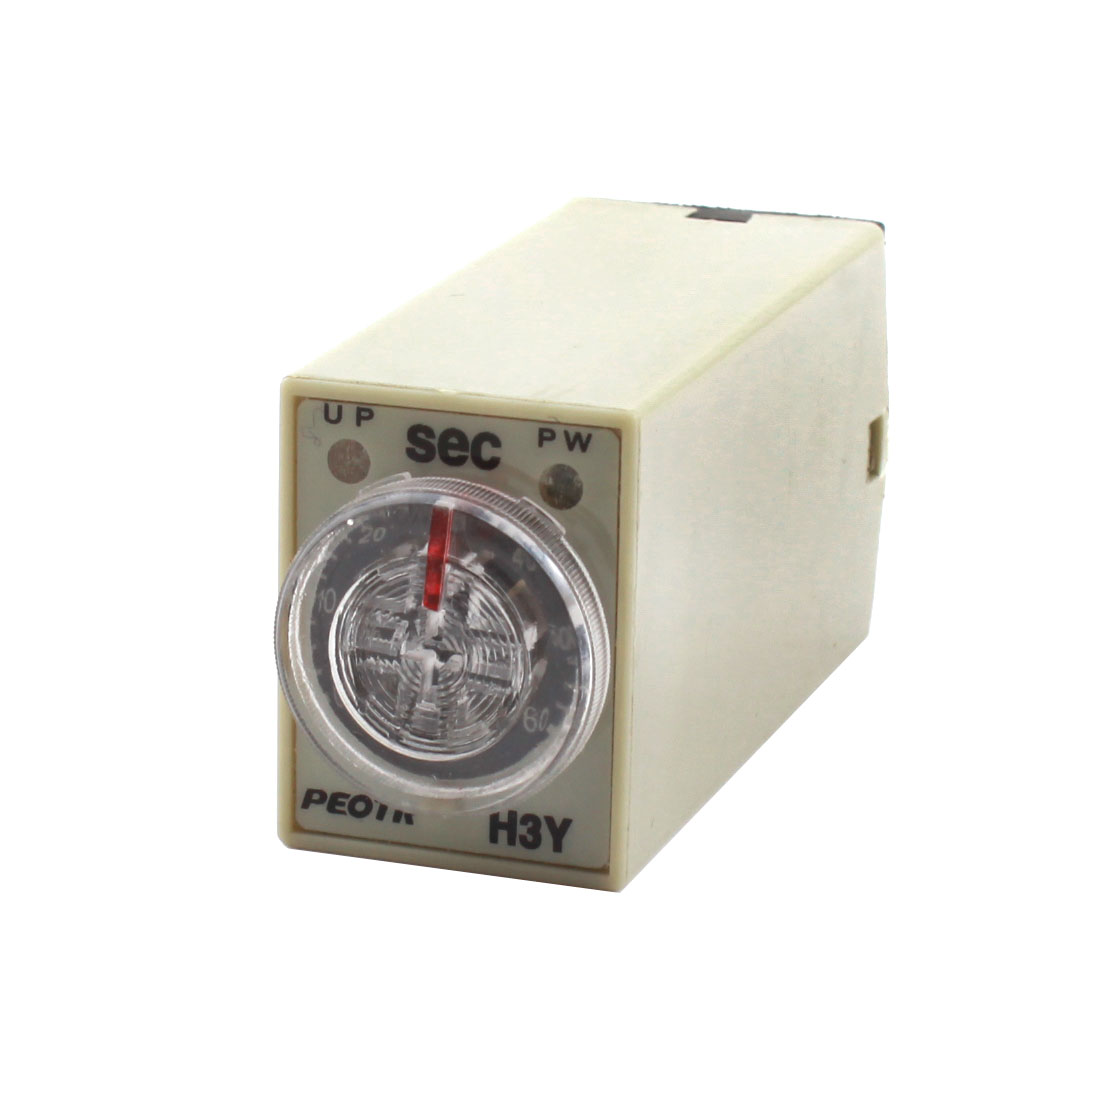 H3Y-4 AC 220V 0-60 Sec 8Pin 4PDT 4NO 4NC Plugable Type Knob Control Time Delay Timer Relay